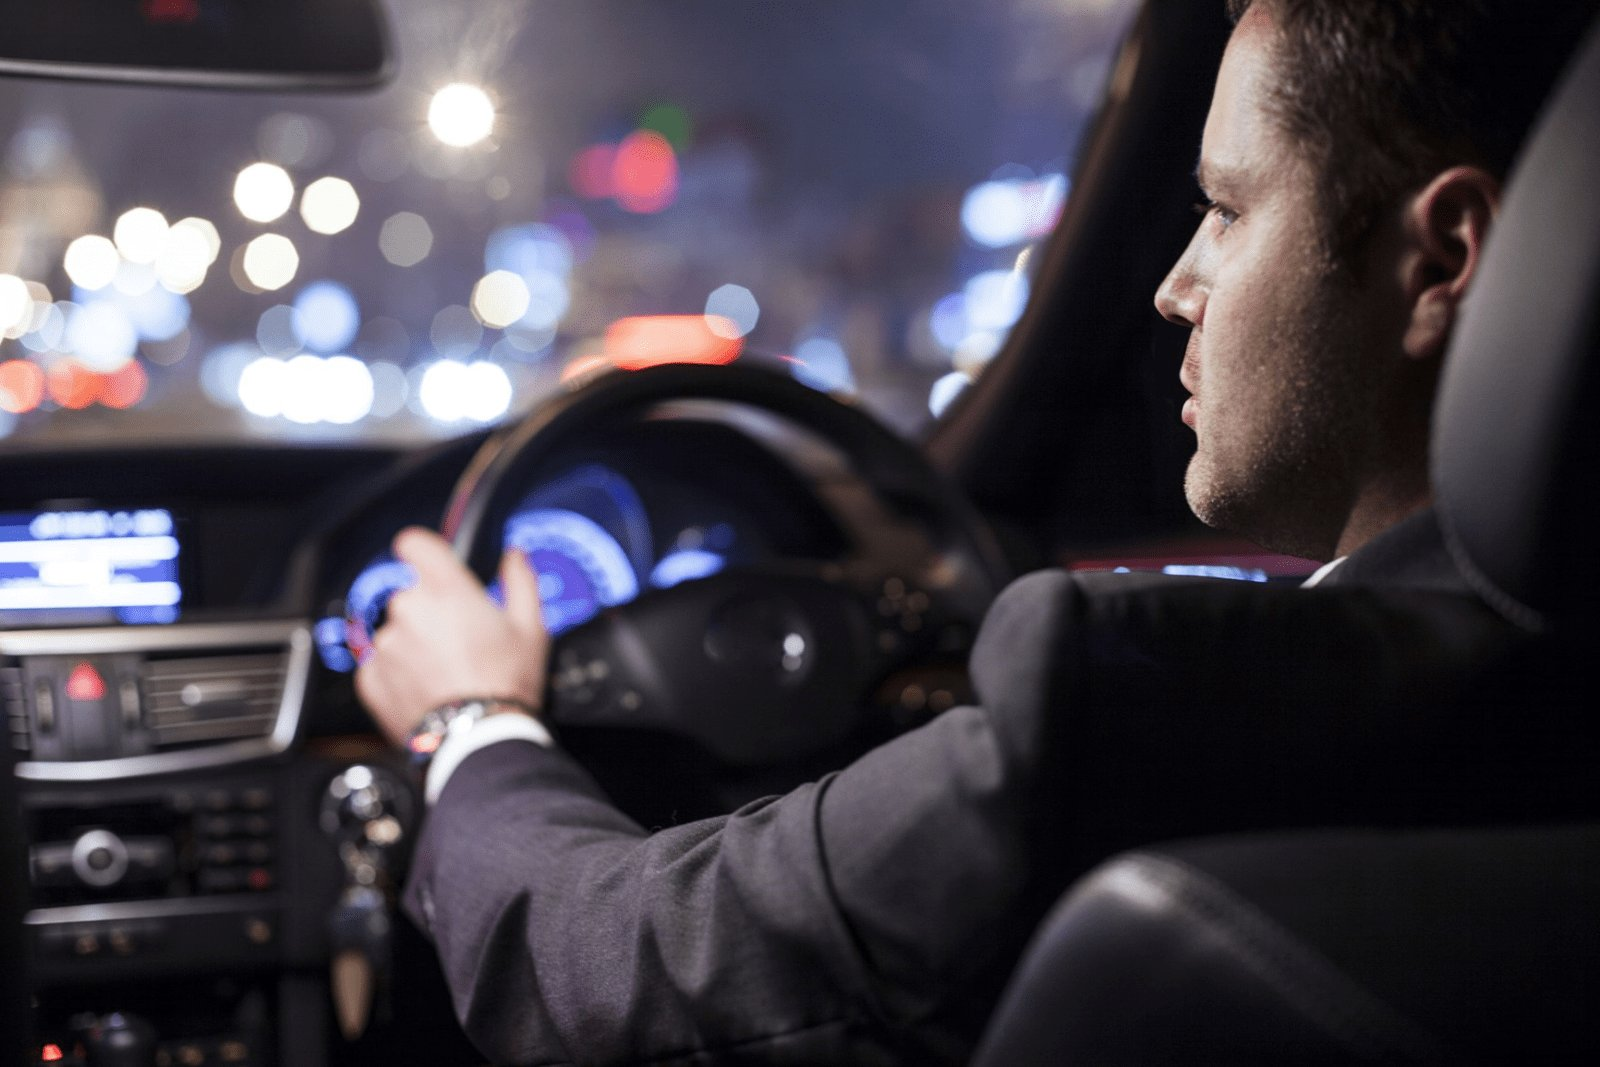 breathalyzers and cars Read the latest breathalyzer news and browse our full collection of breathalyzer articles, photos, press releases and related videos.